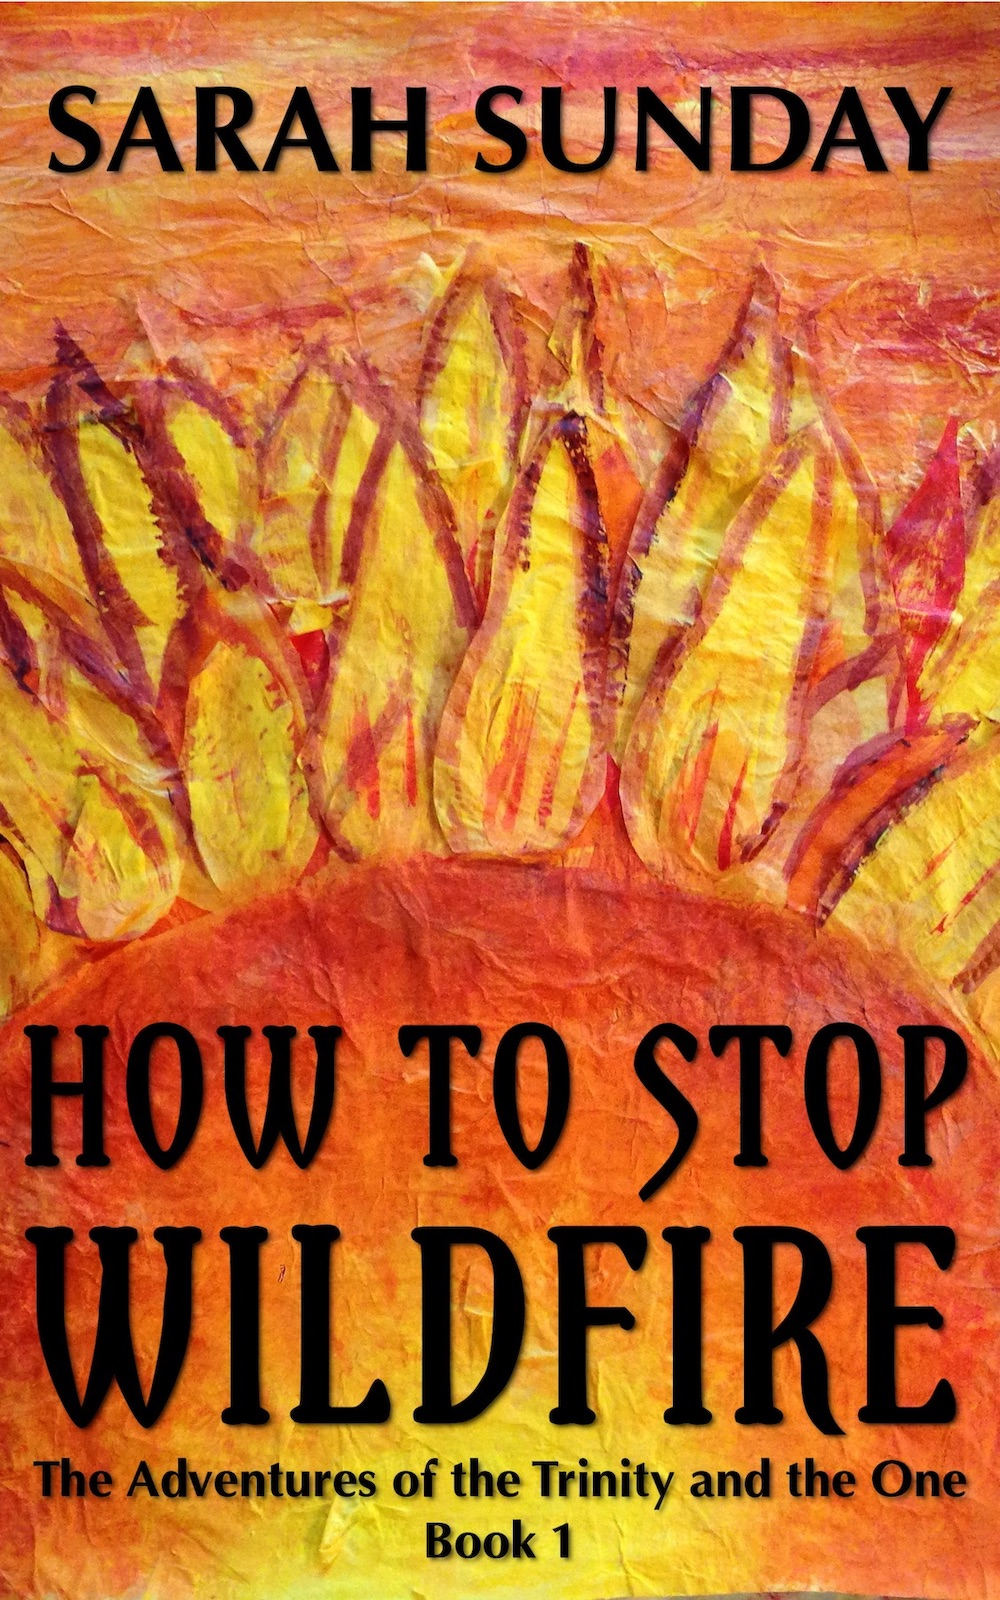 How to Stop Wildfire FIFTH Anniversary